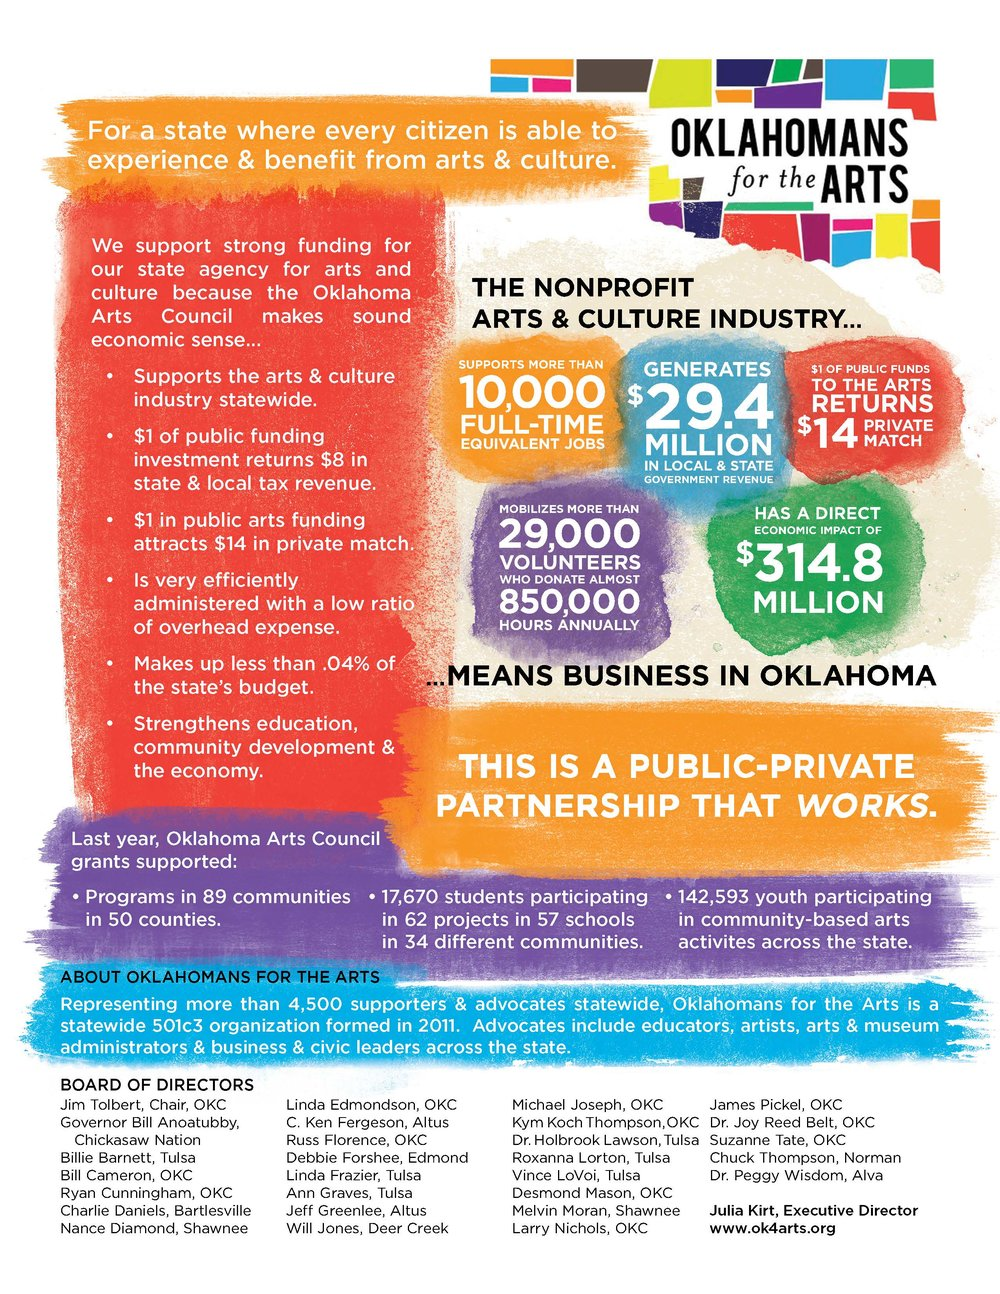 Oklahomans for the Arts' Legislative Priority Fact Sheets for Oklahoma Arts Day 2017